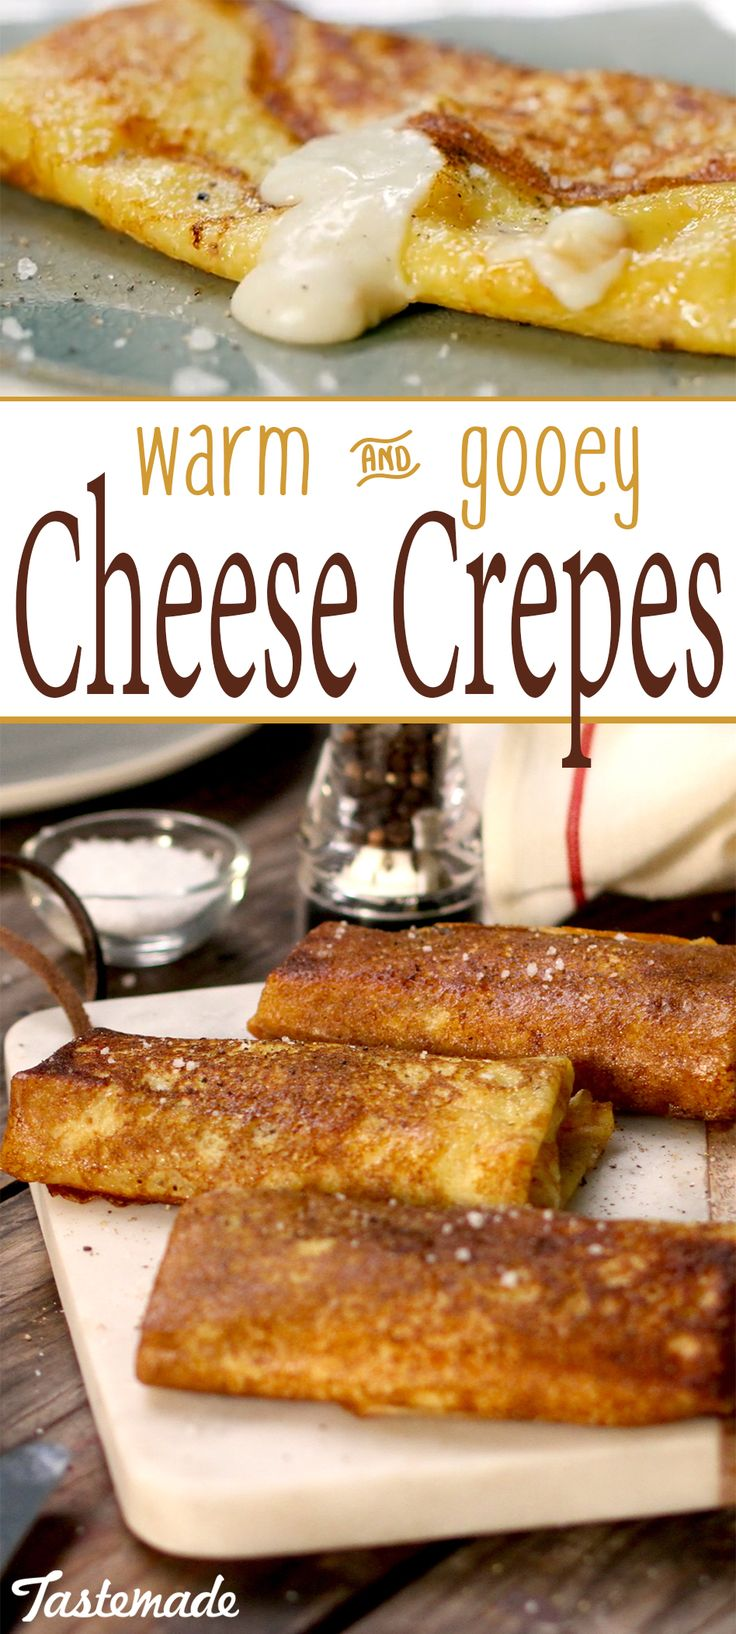 What's not to love about warm pockets of cheesy goodness?